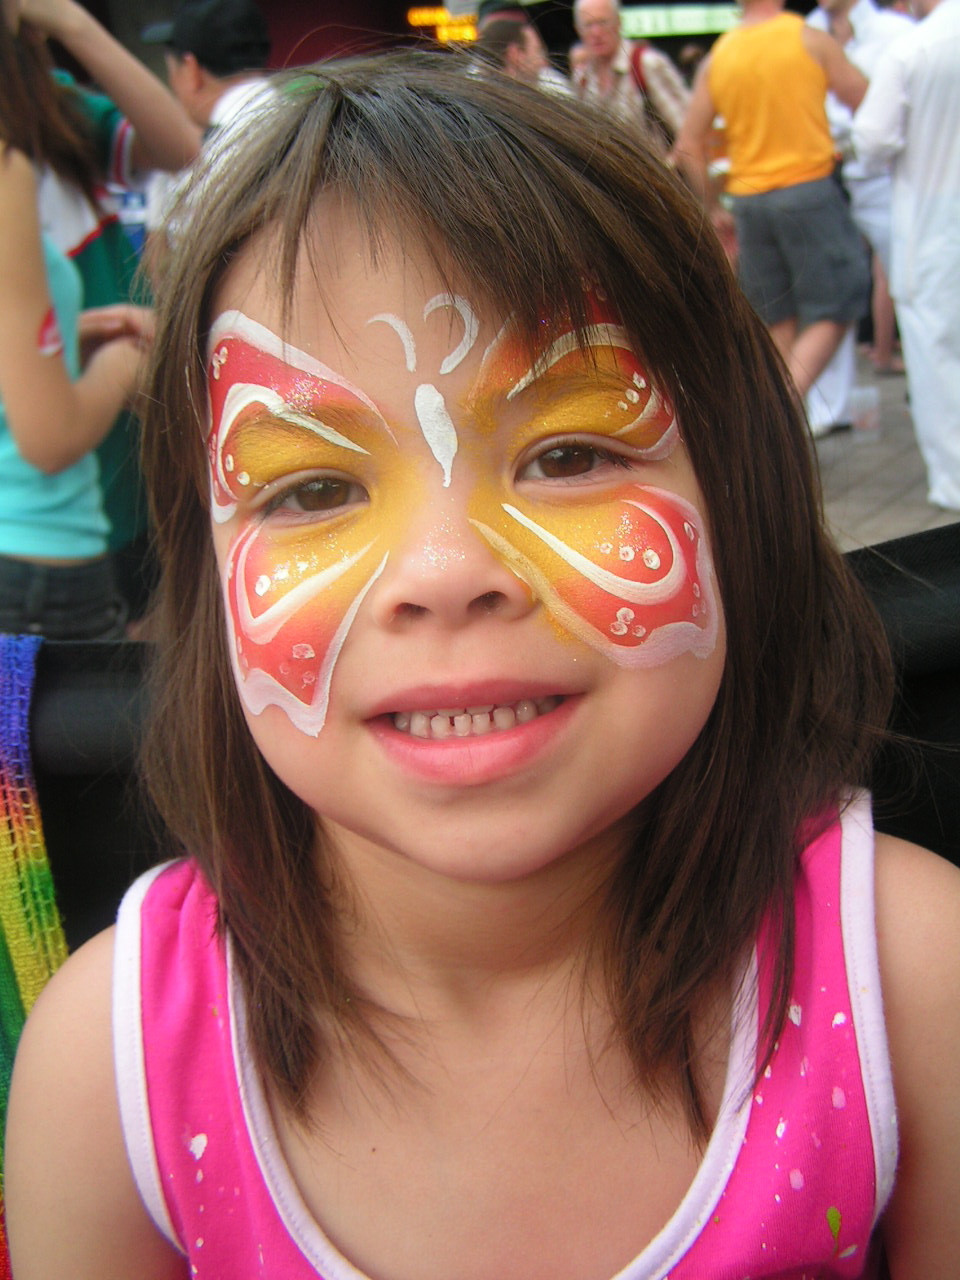 Kids Party Face Painting  Body Painting Show Face Painting Party Birthday Ideas